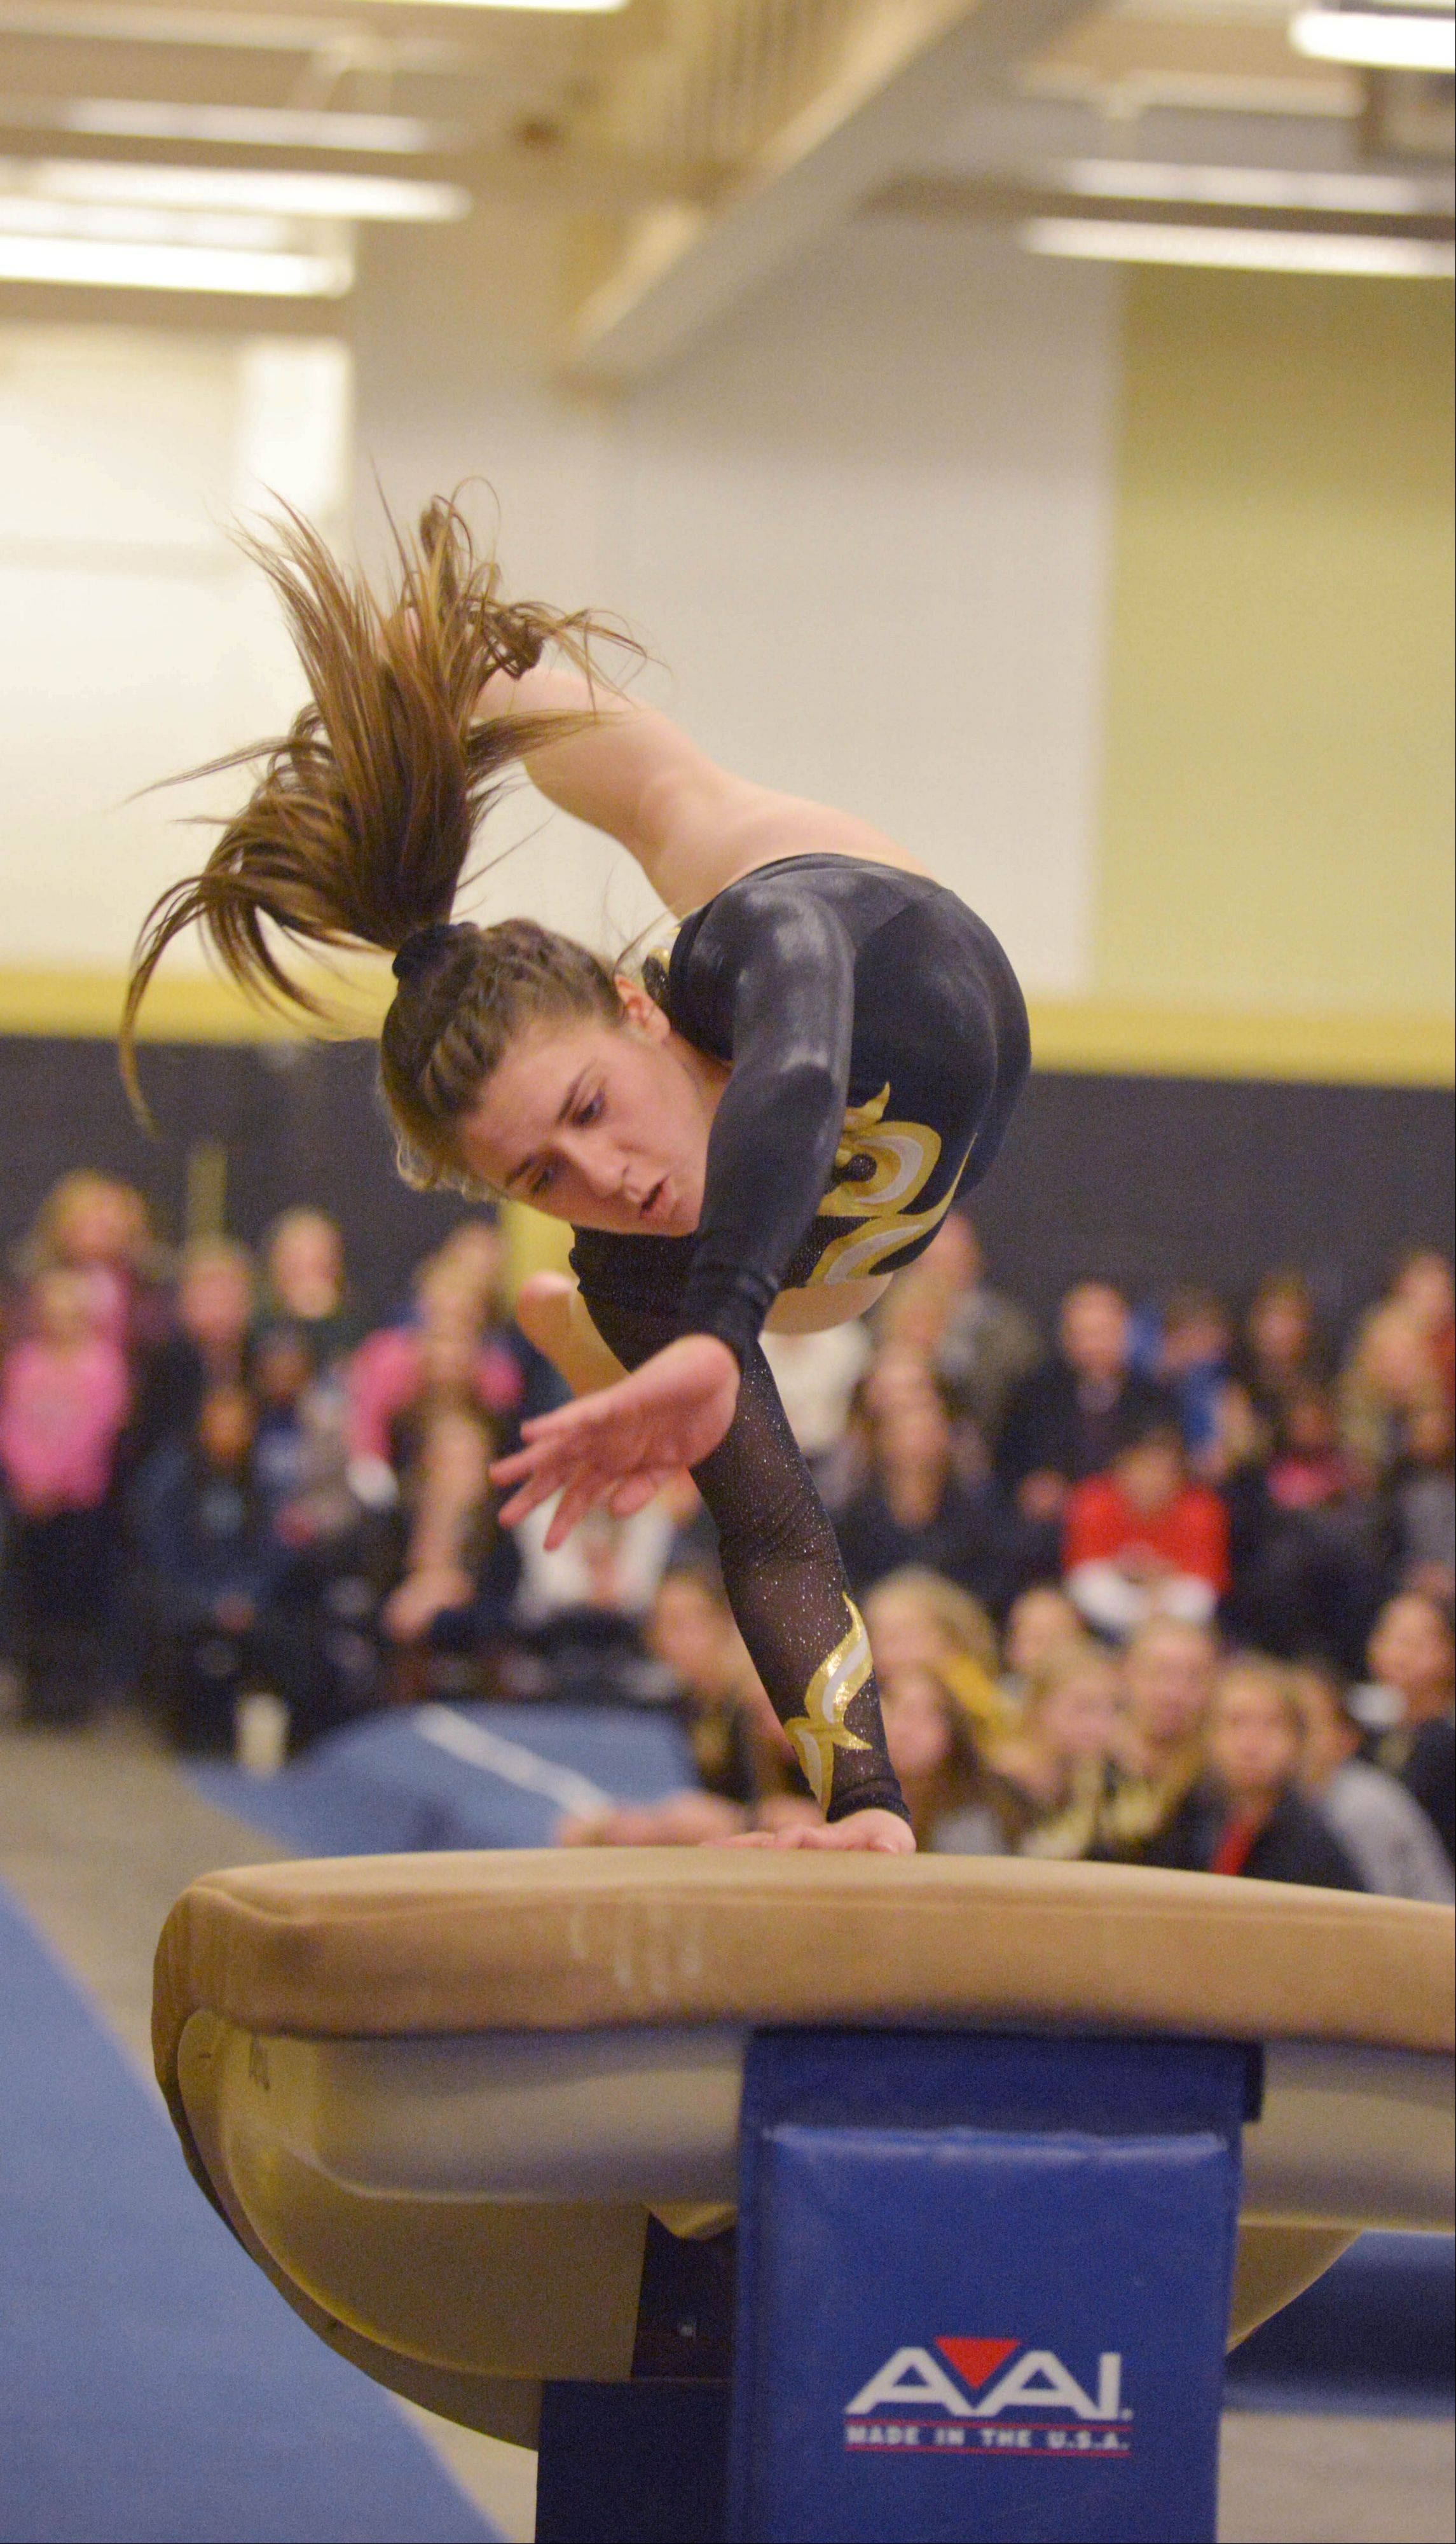 Eleni Galanopulos of Glenbard North on the vault during the St. Charles co-op at Glenbard North girls gymnastics meet Wednesday.